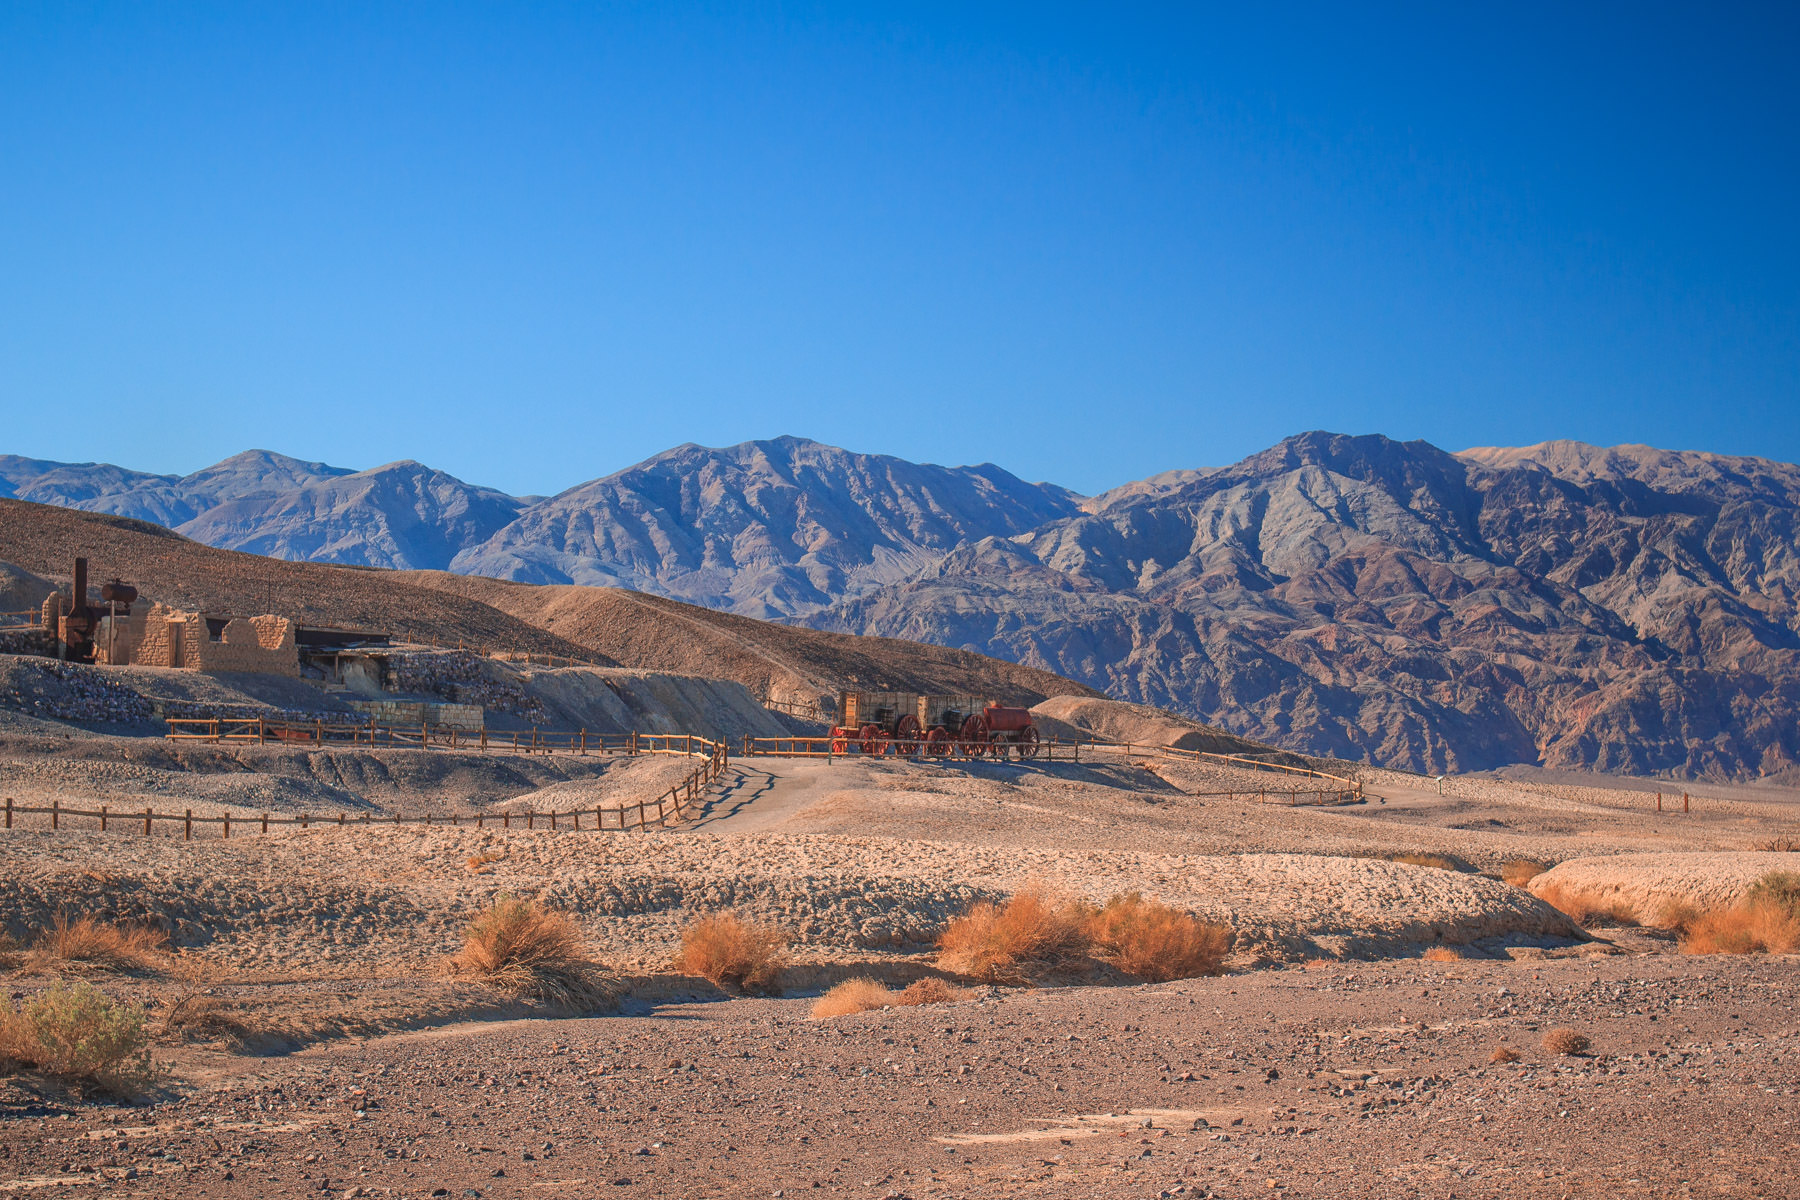 The Harmony Borax Works ruins and interpretive center at Death Valley National Park, California.